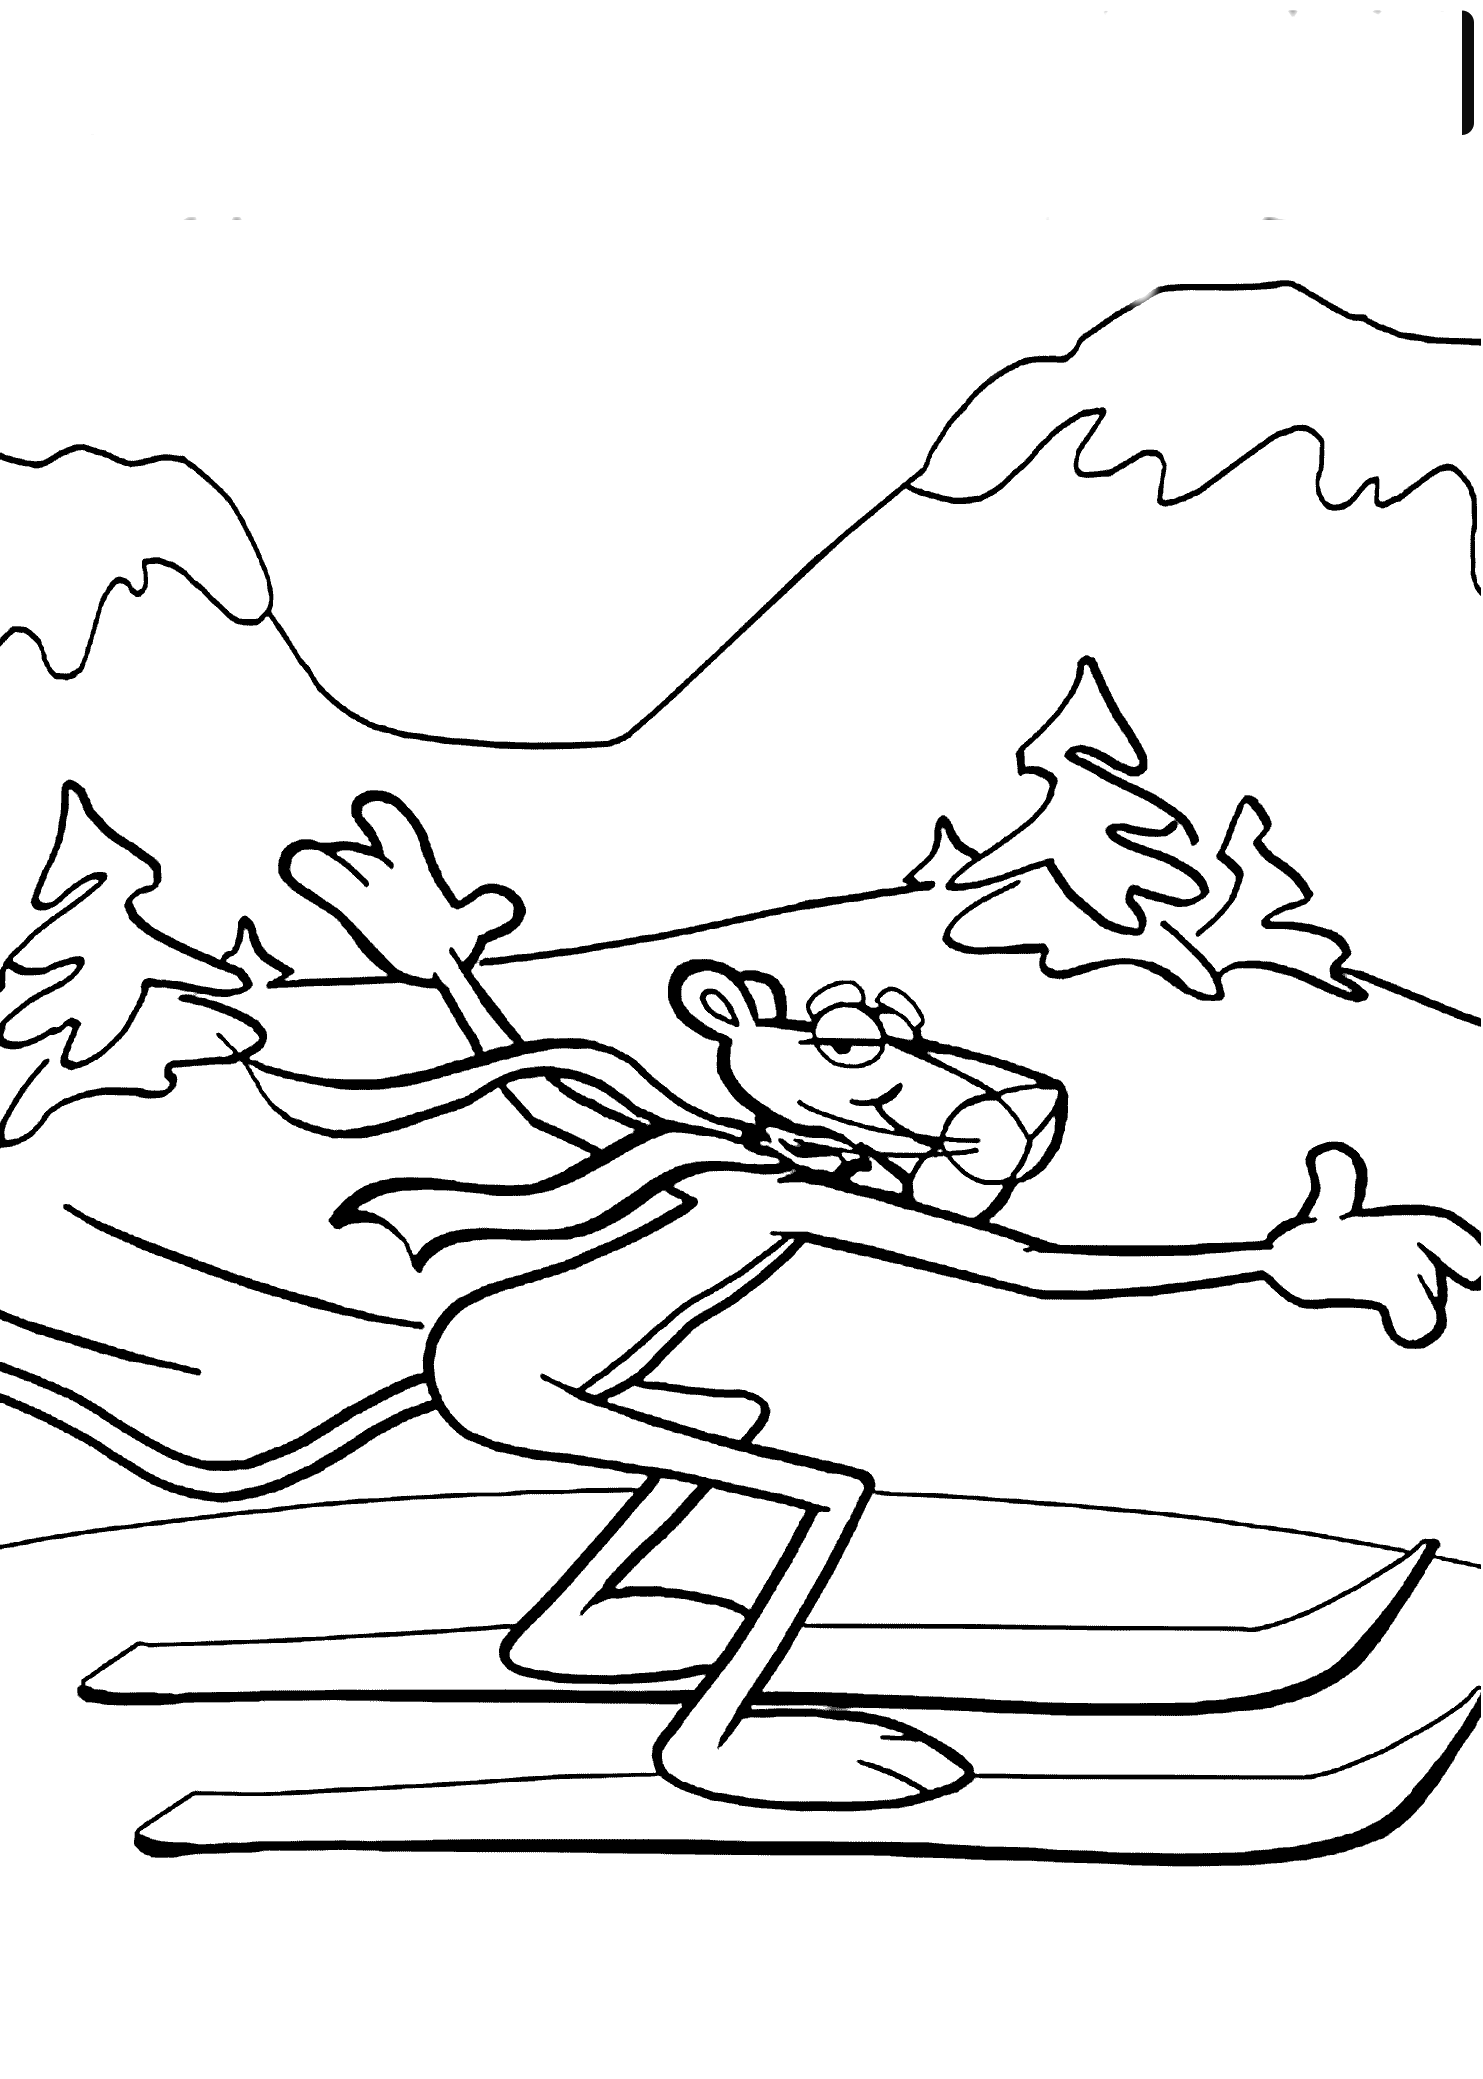 Coloring Pages Of Kids Skiing